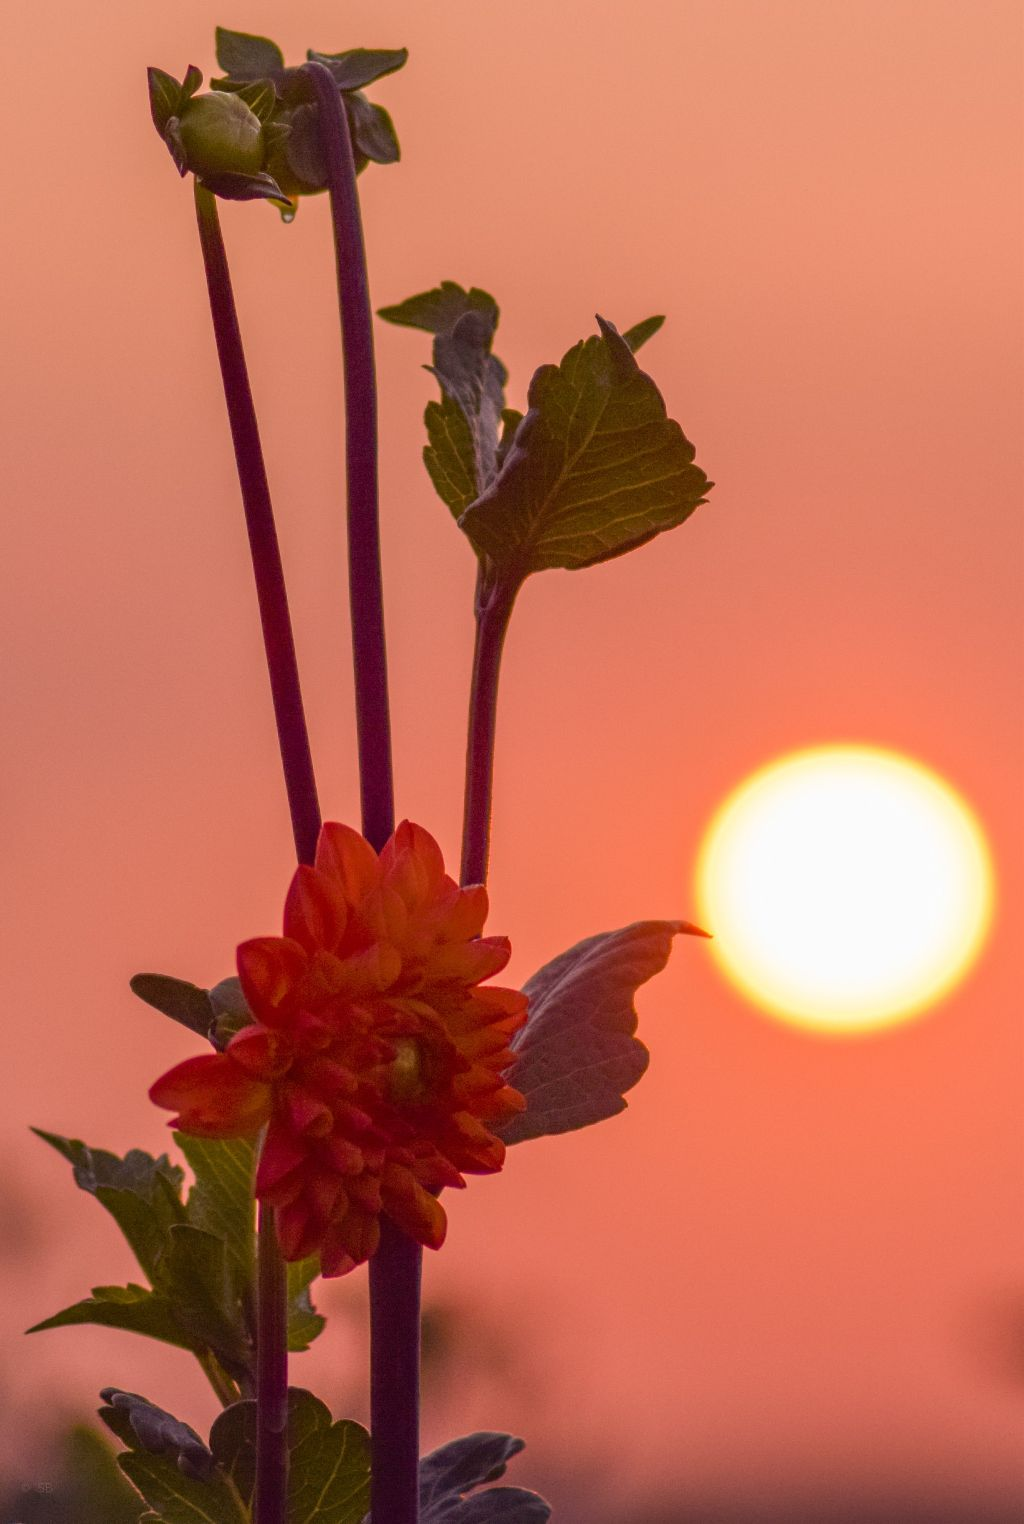 #photograpy #myphoto #picoftheday #flower #morning #sunrise #red  #freetoedit